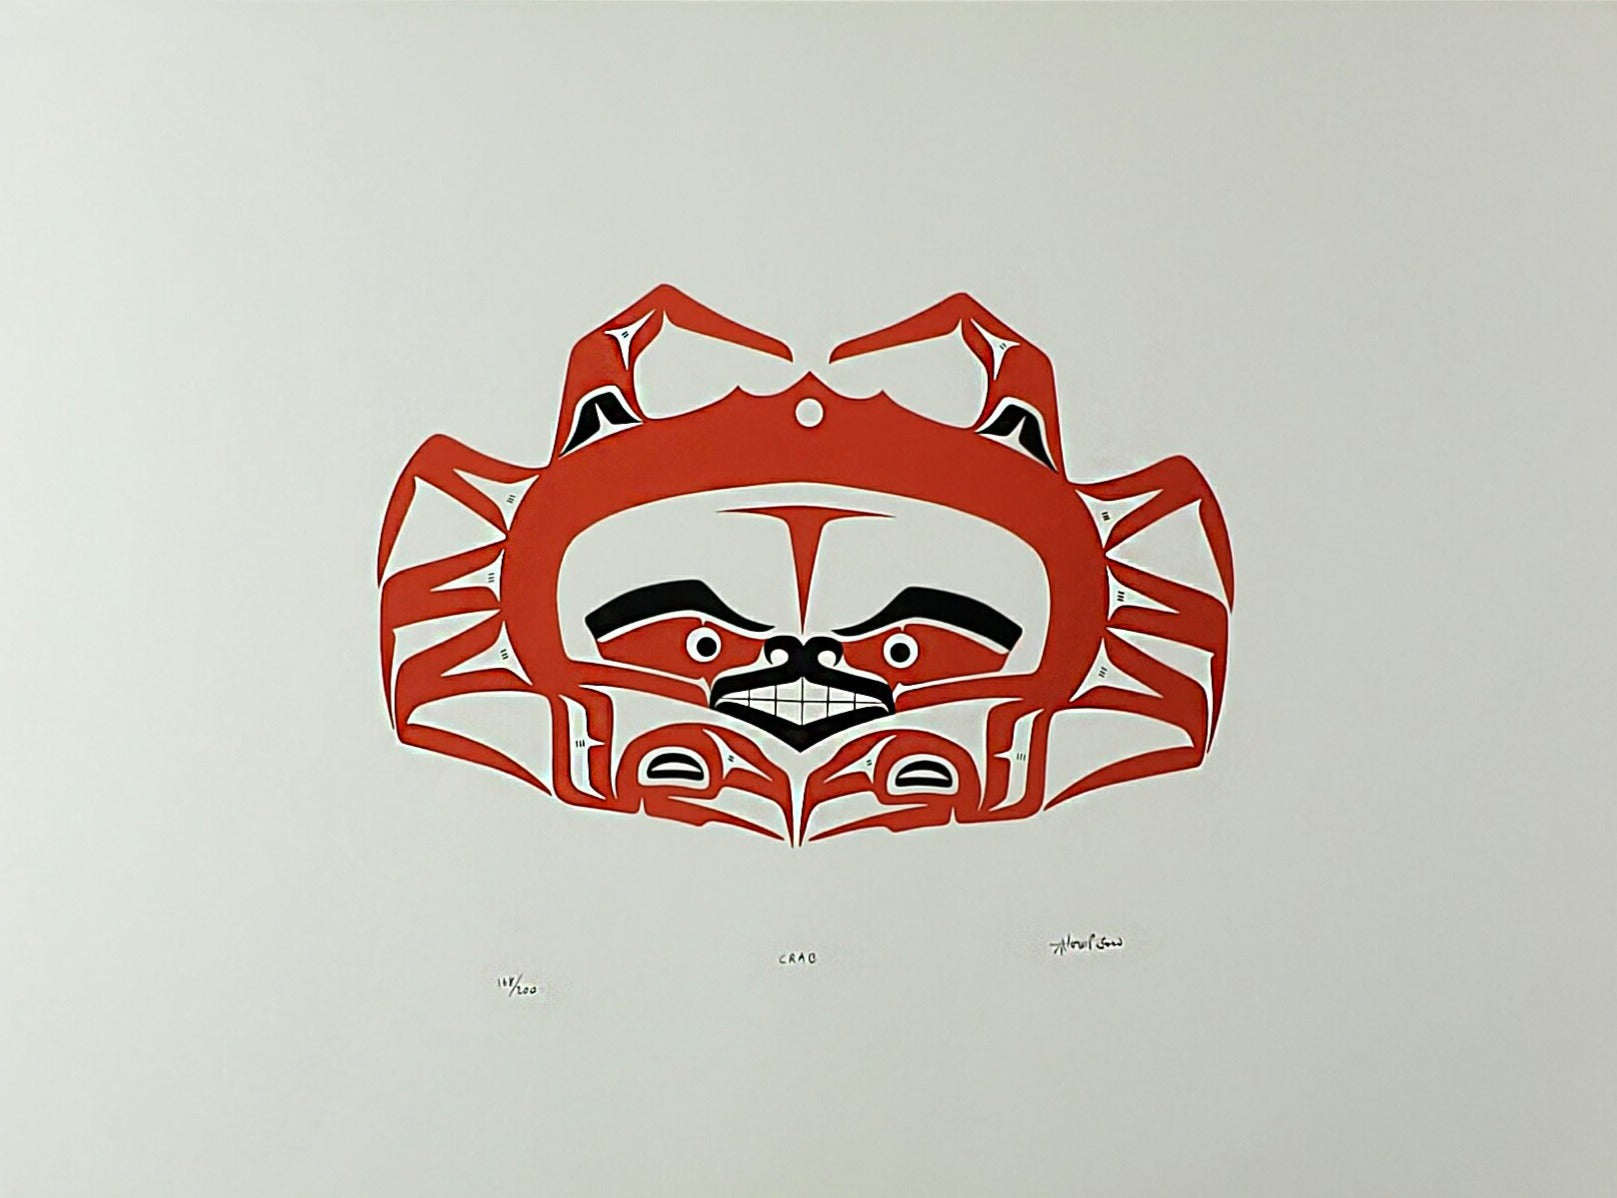 Crab - Art Thompson (Nuu-chah-nulth)